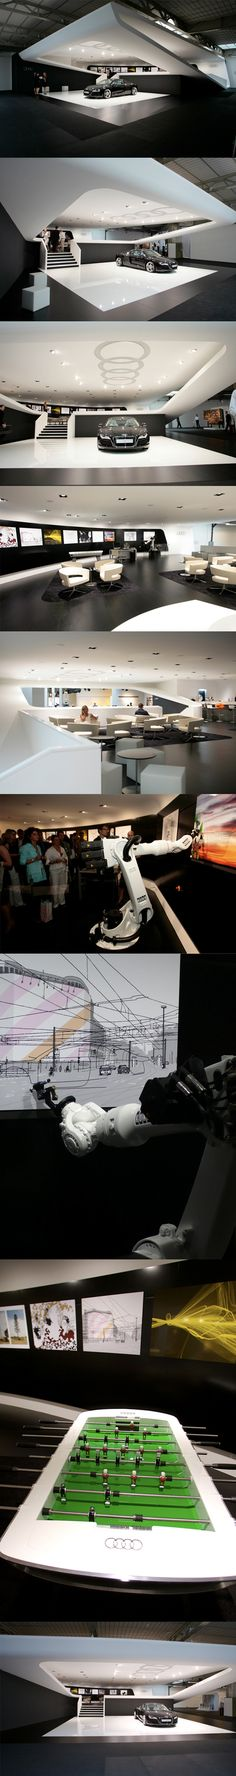 Audi / Art Basel 2008 by Malte Schweers, via Behance